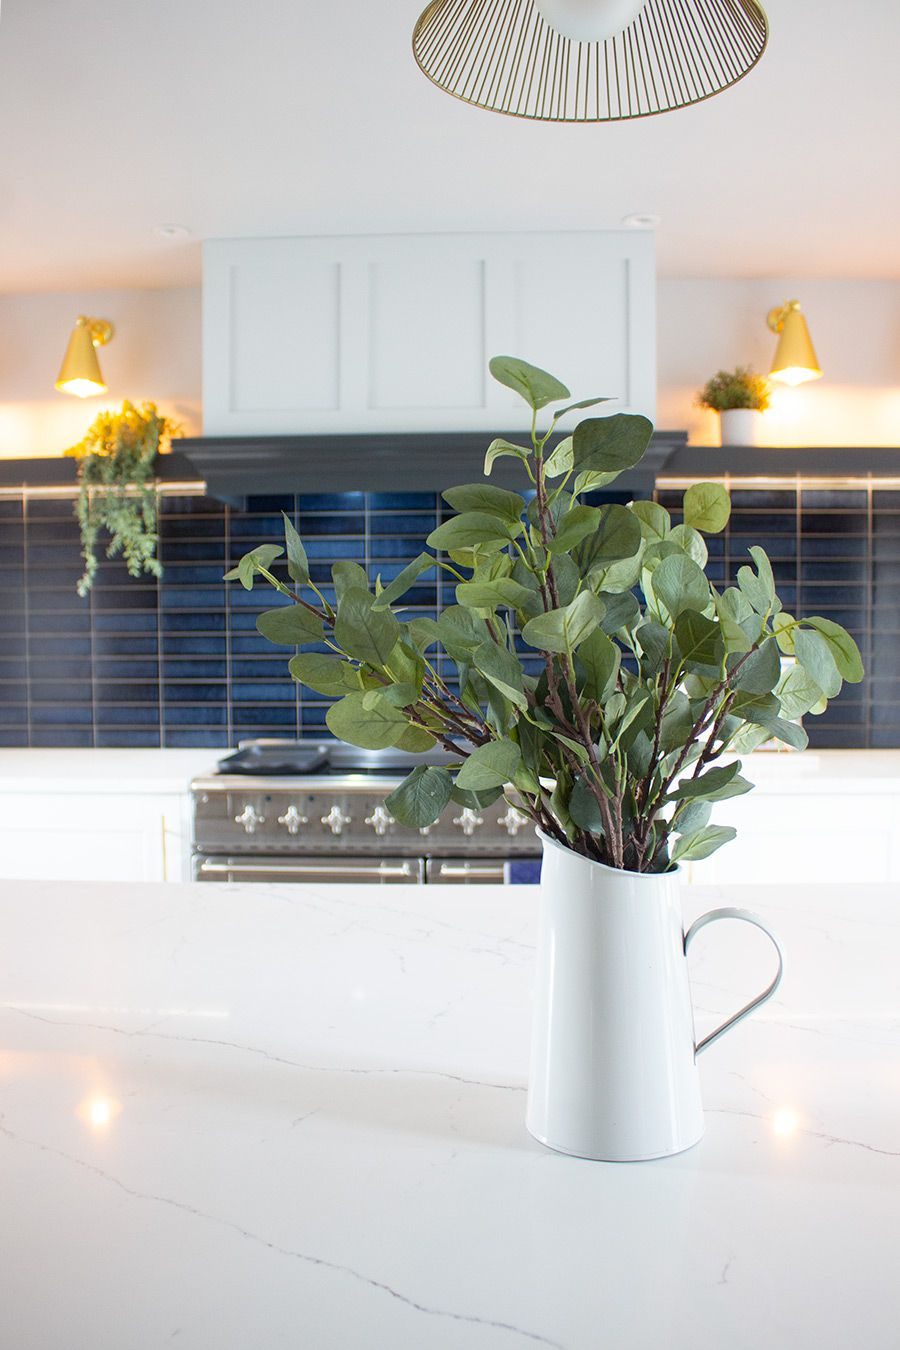 A photo of an enamel jug on the marble worktop.